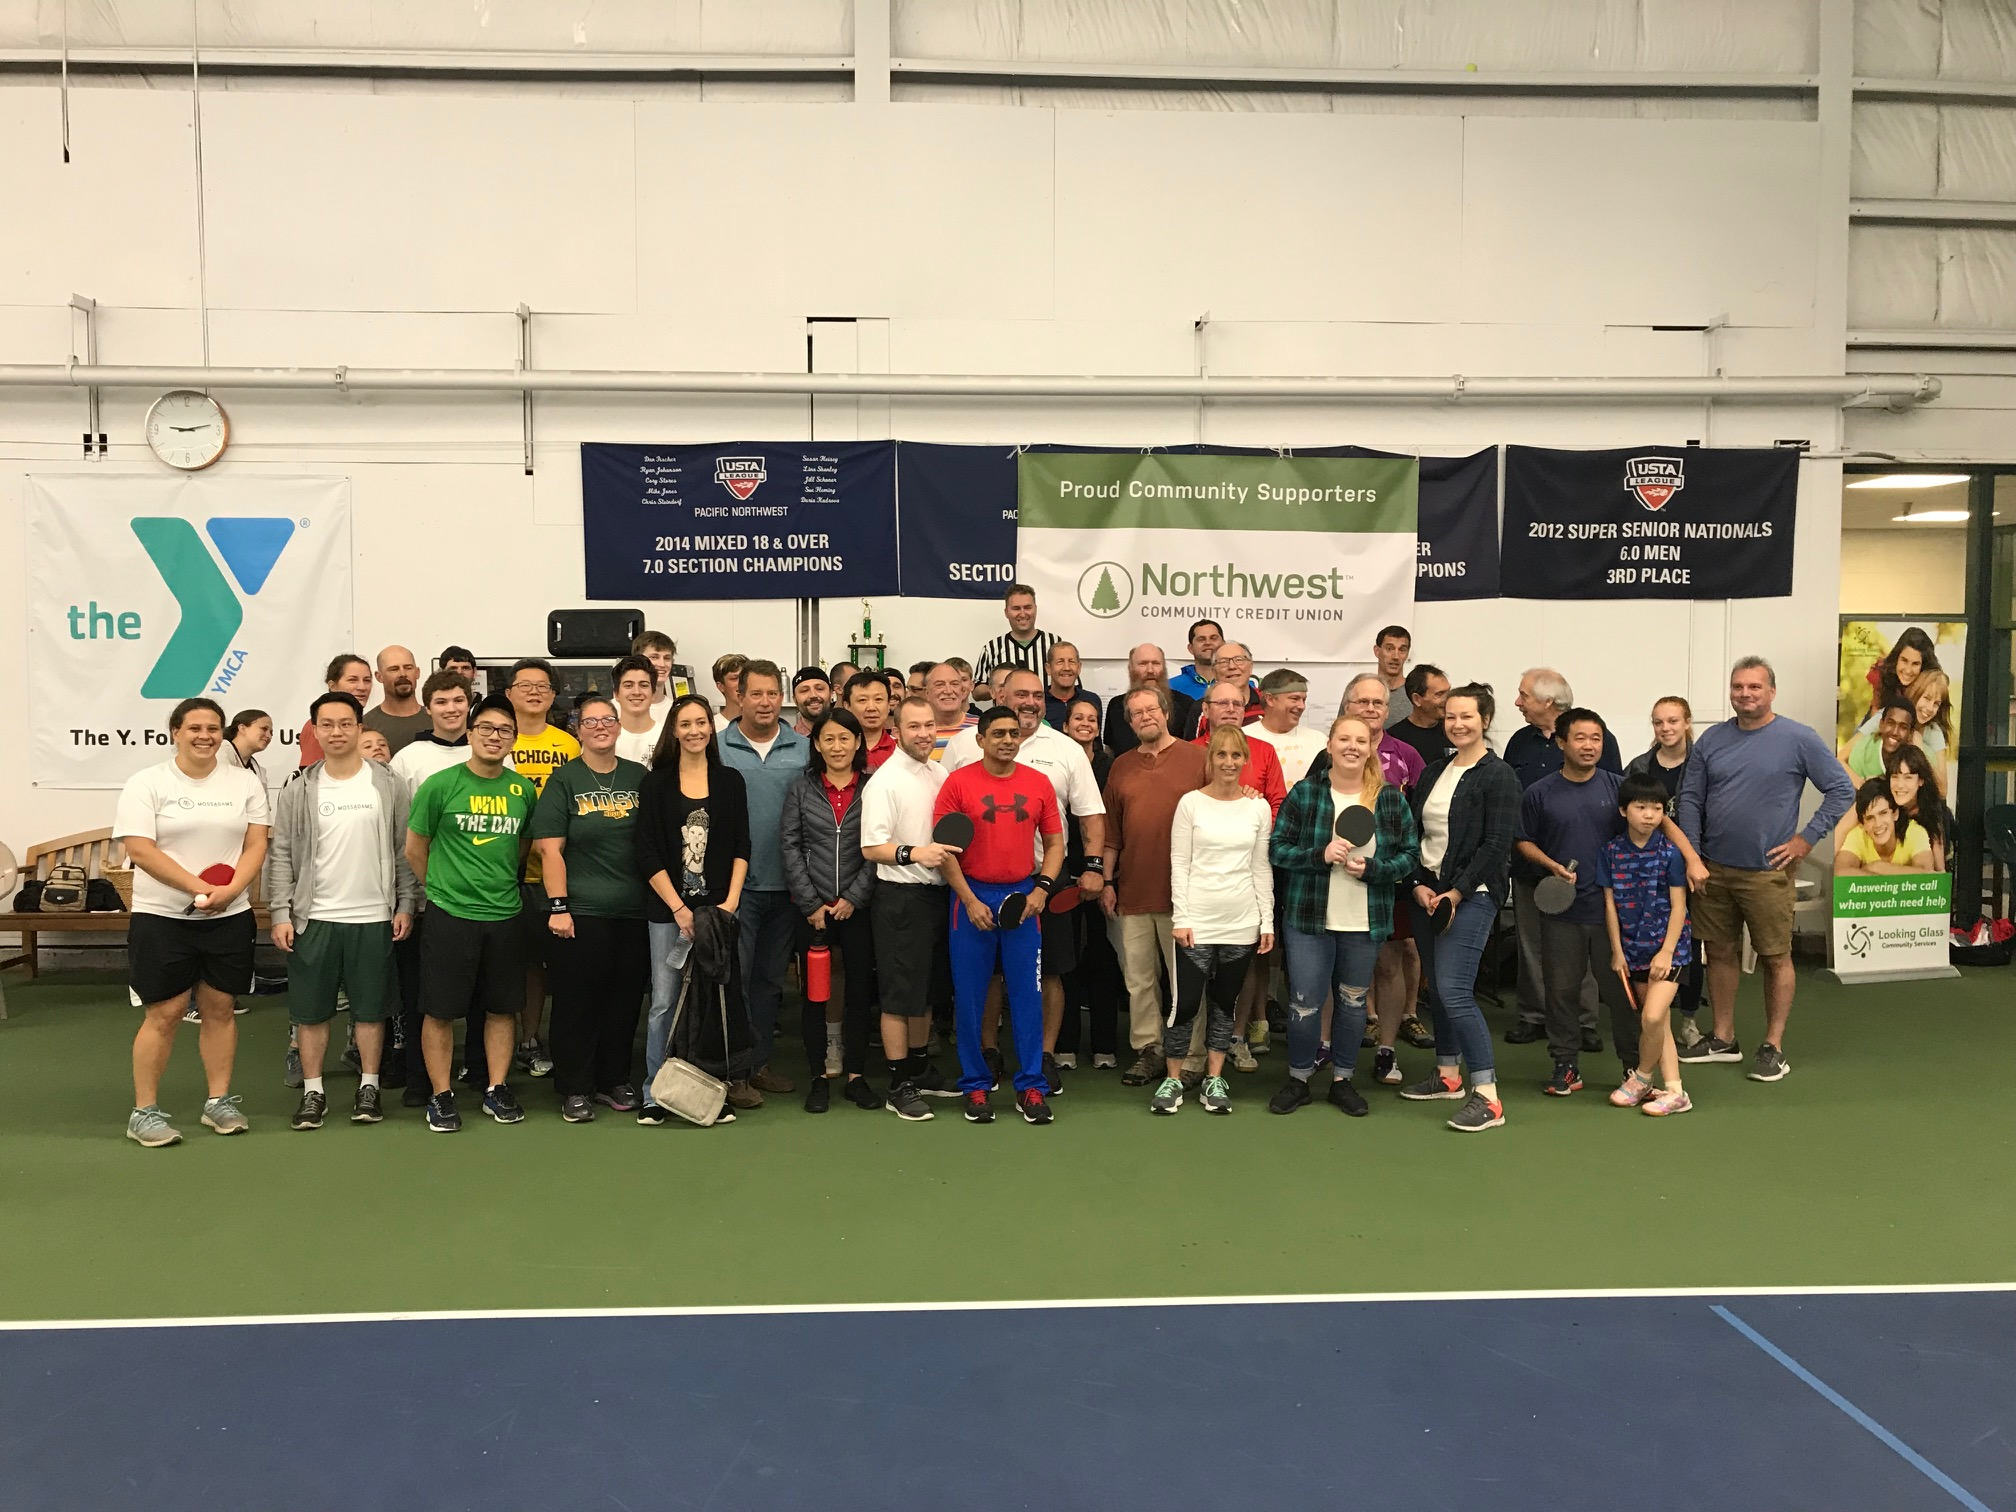 Players from 25 competing doubles teams posed for a group photo before competition began at the Paddle Battle 2018 ping pong tournament event, Saturday, Oct 6th at the Eugene YMCA.